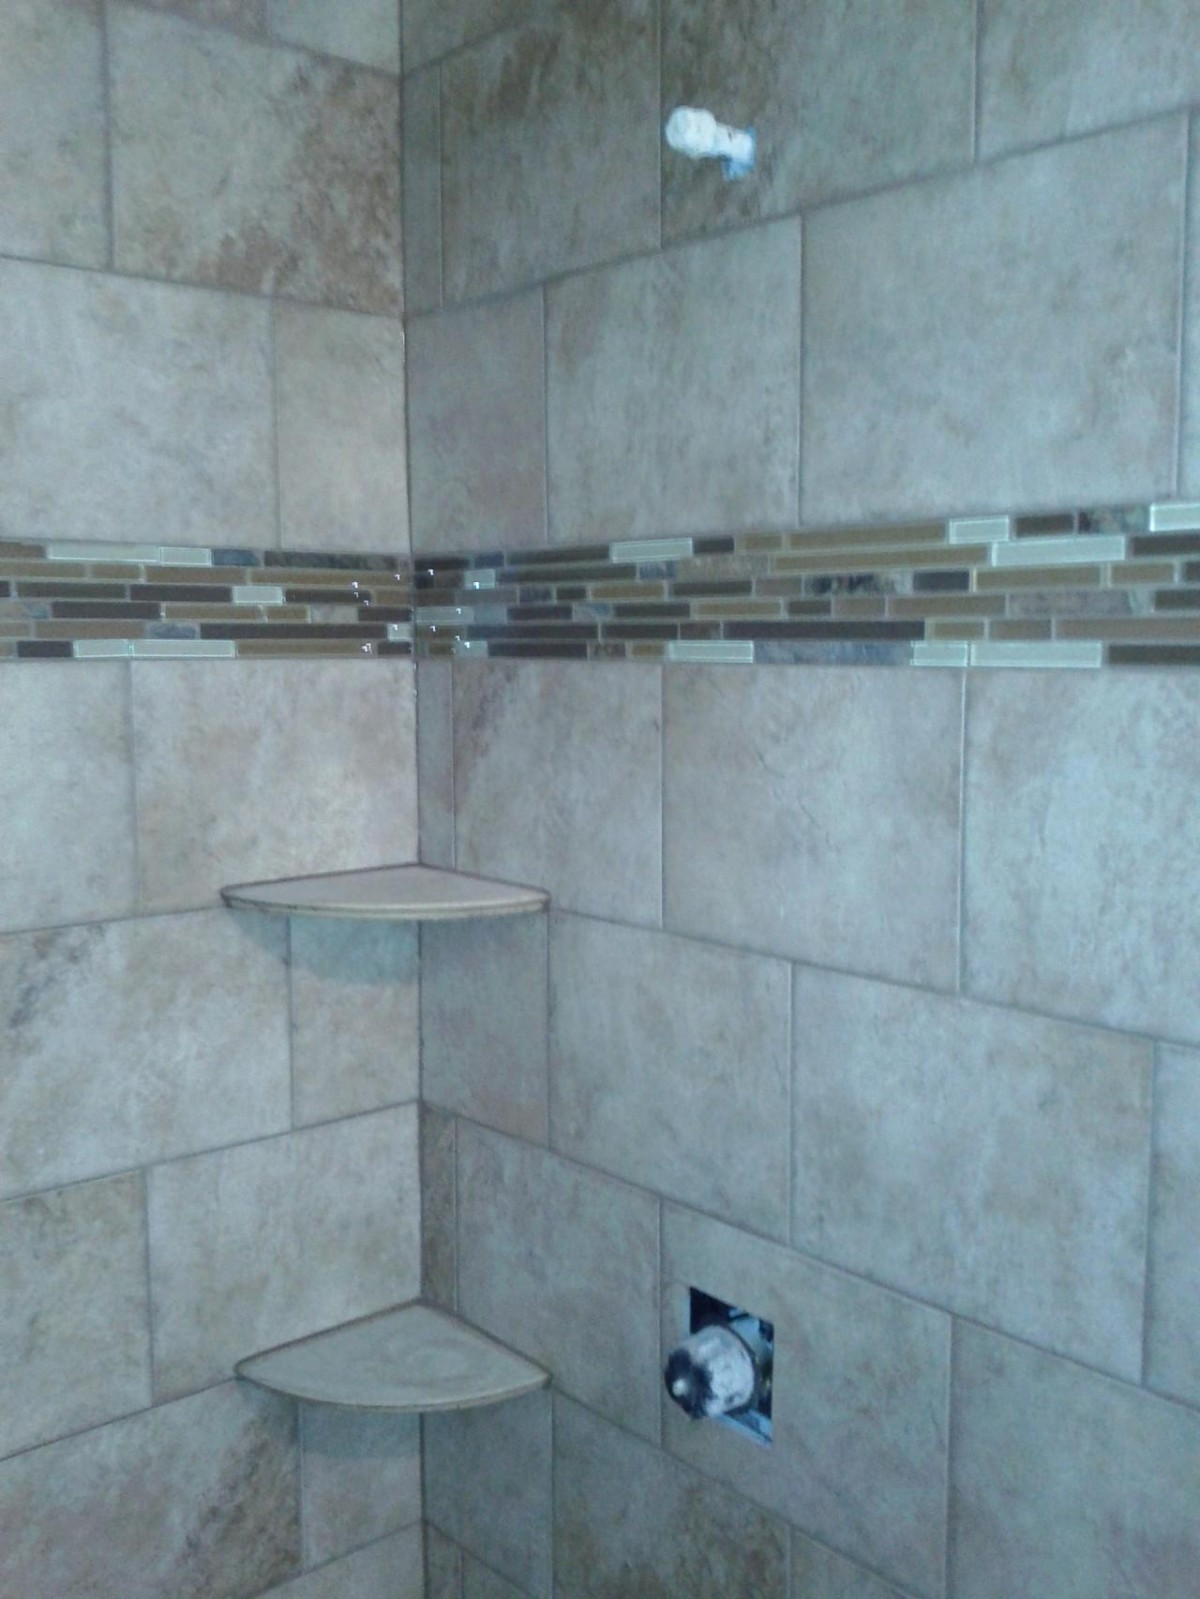 30 cool pictures and ideas pebble shower floor tile Bathroom tile pictures gallery